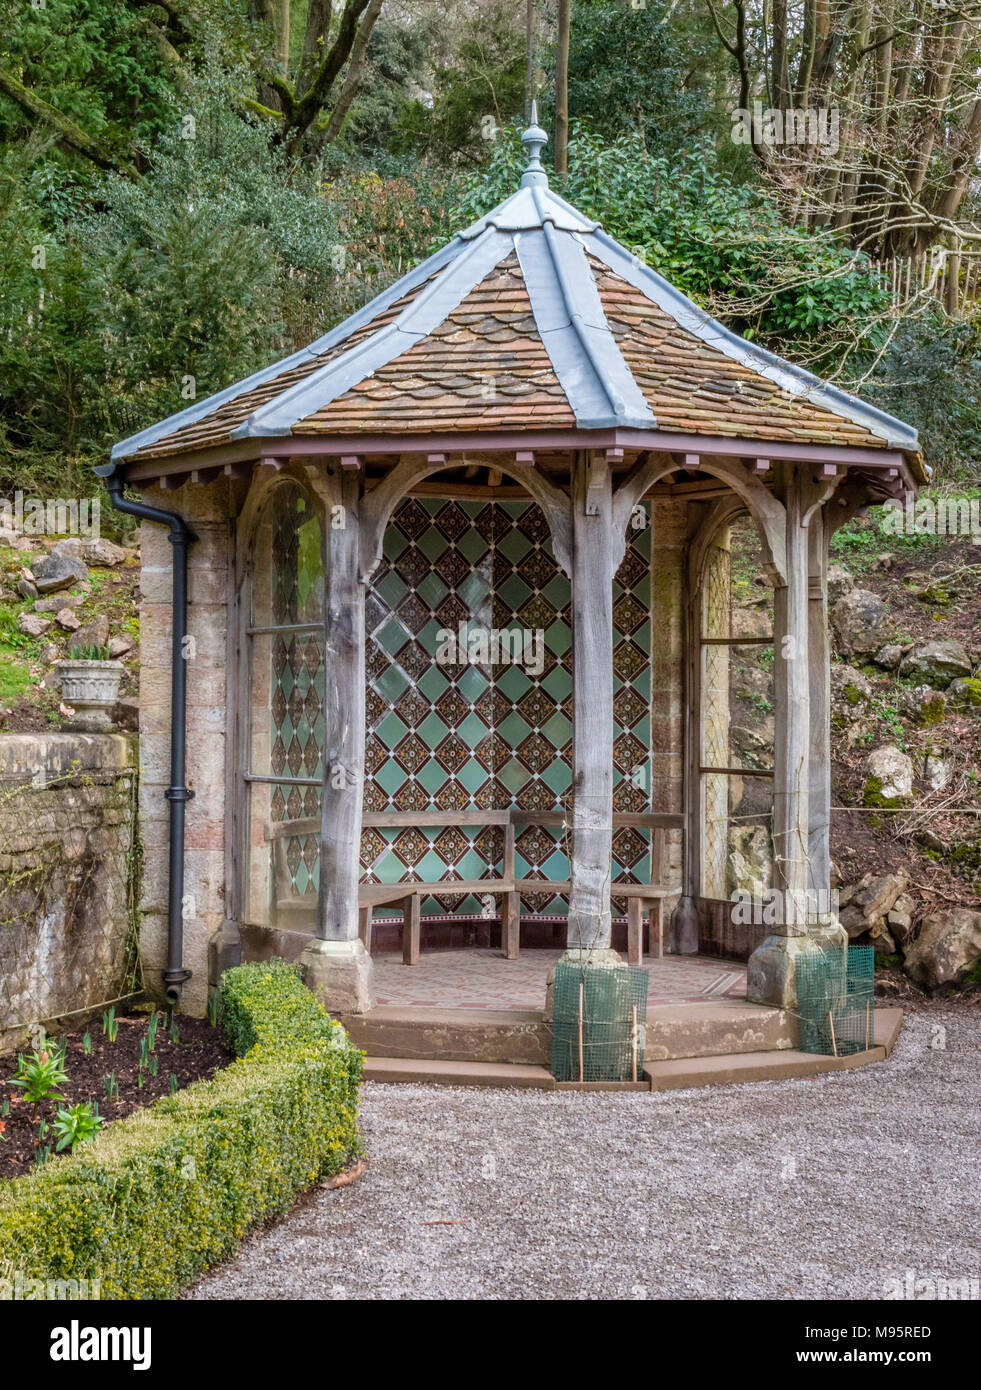 Summer house with green Victorian tiled walls in the corner of the parterre garden at Tyntesfield in Somerset UK - Stock Image